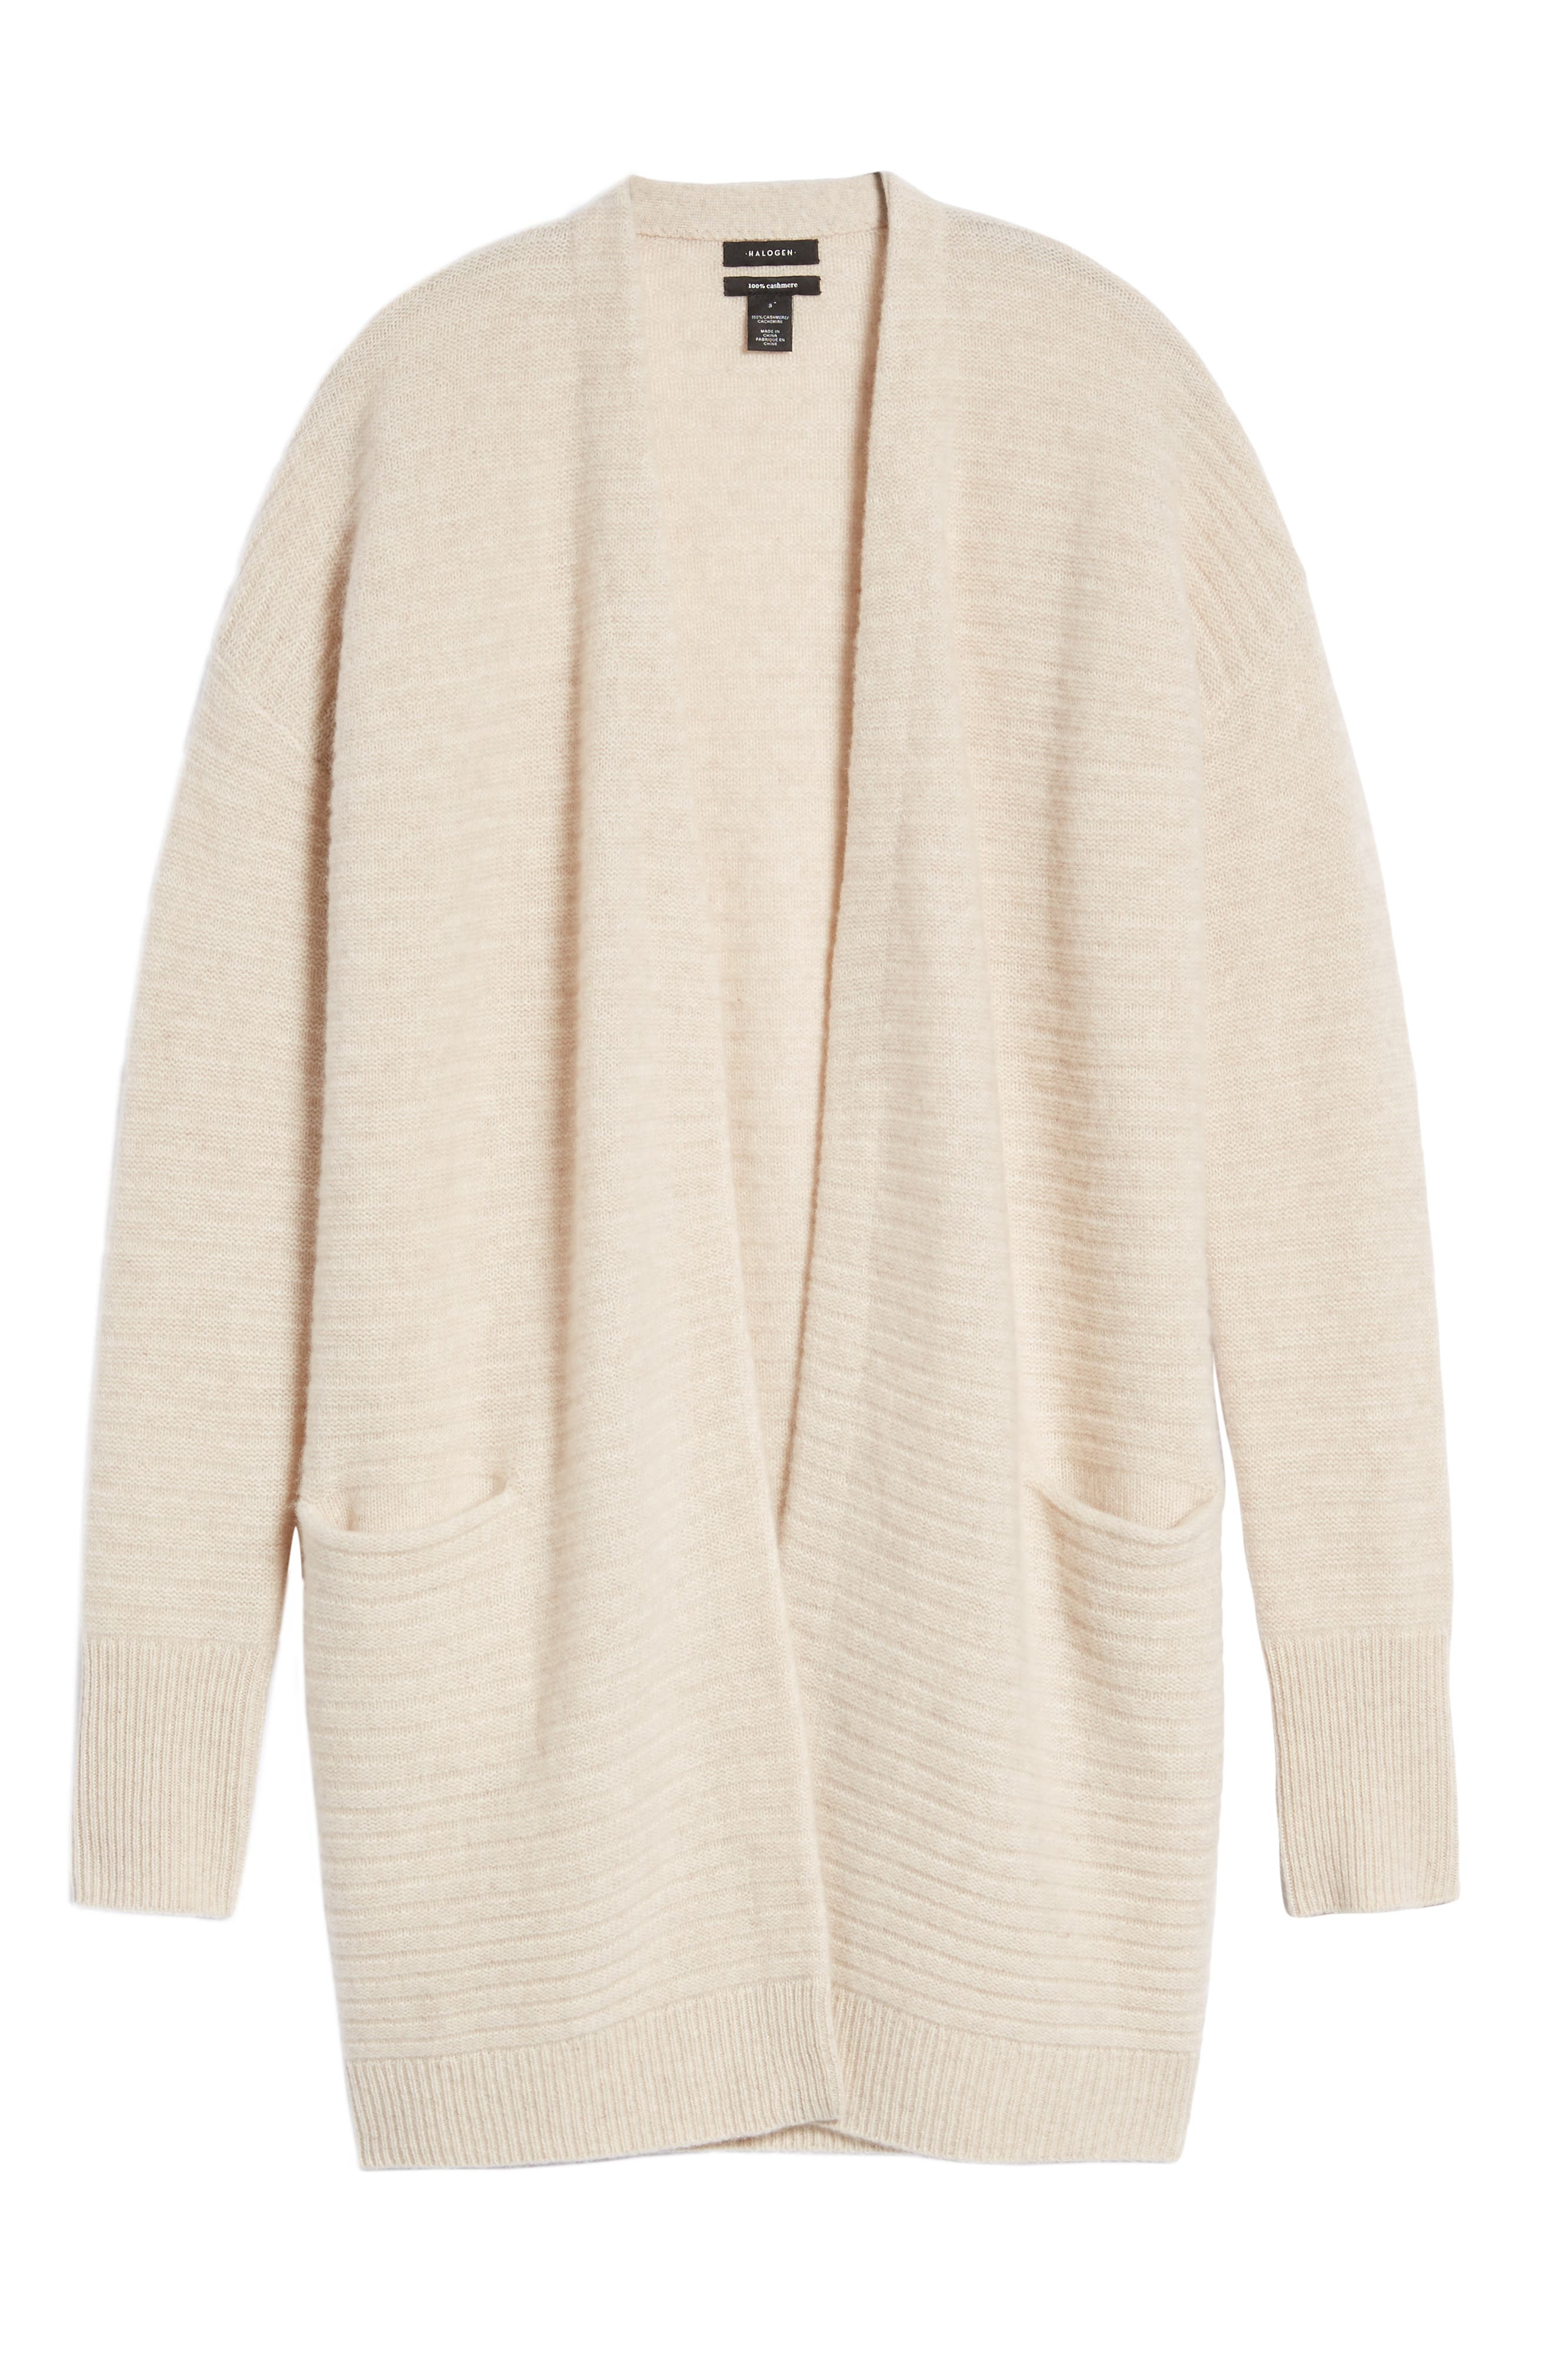 Ribbed Cashmere Cardigan,                             Alternate thumbnail 6, color,                             Heather Oatmeal